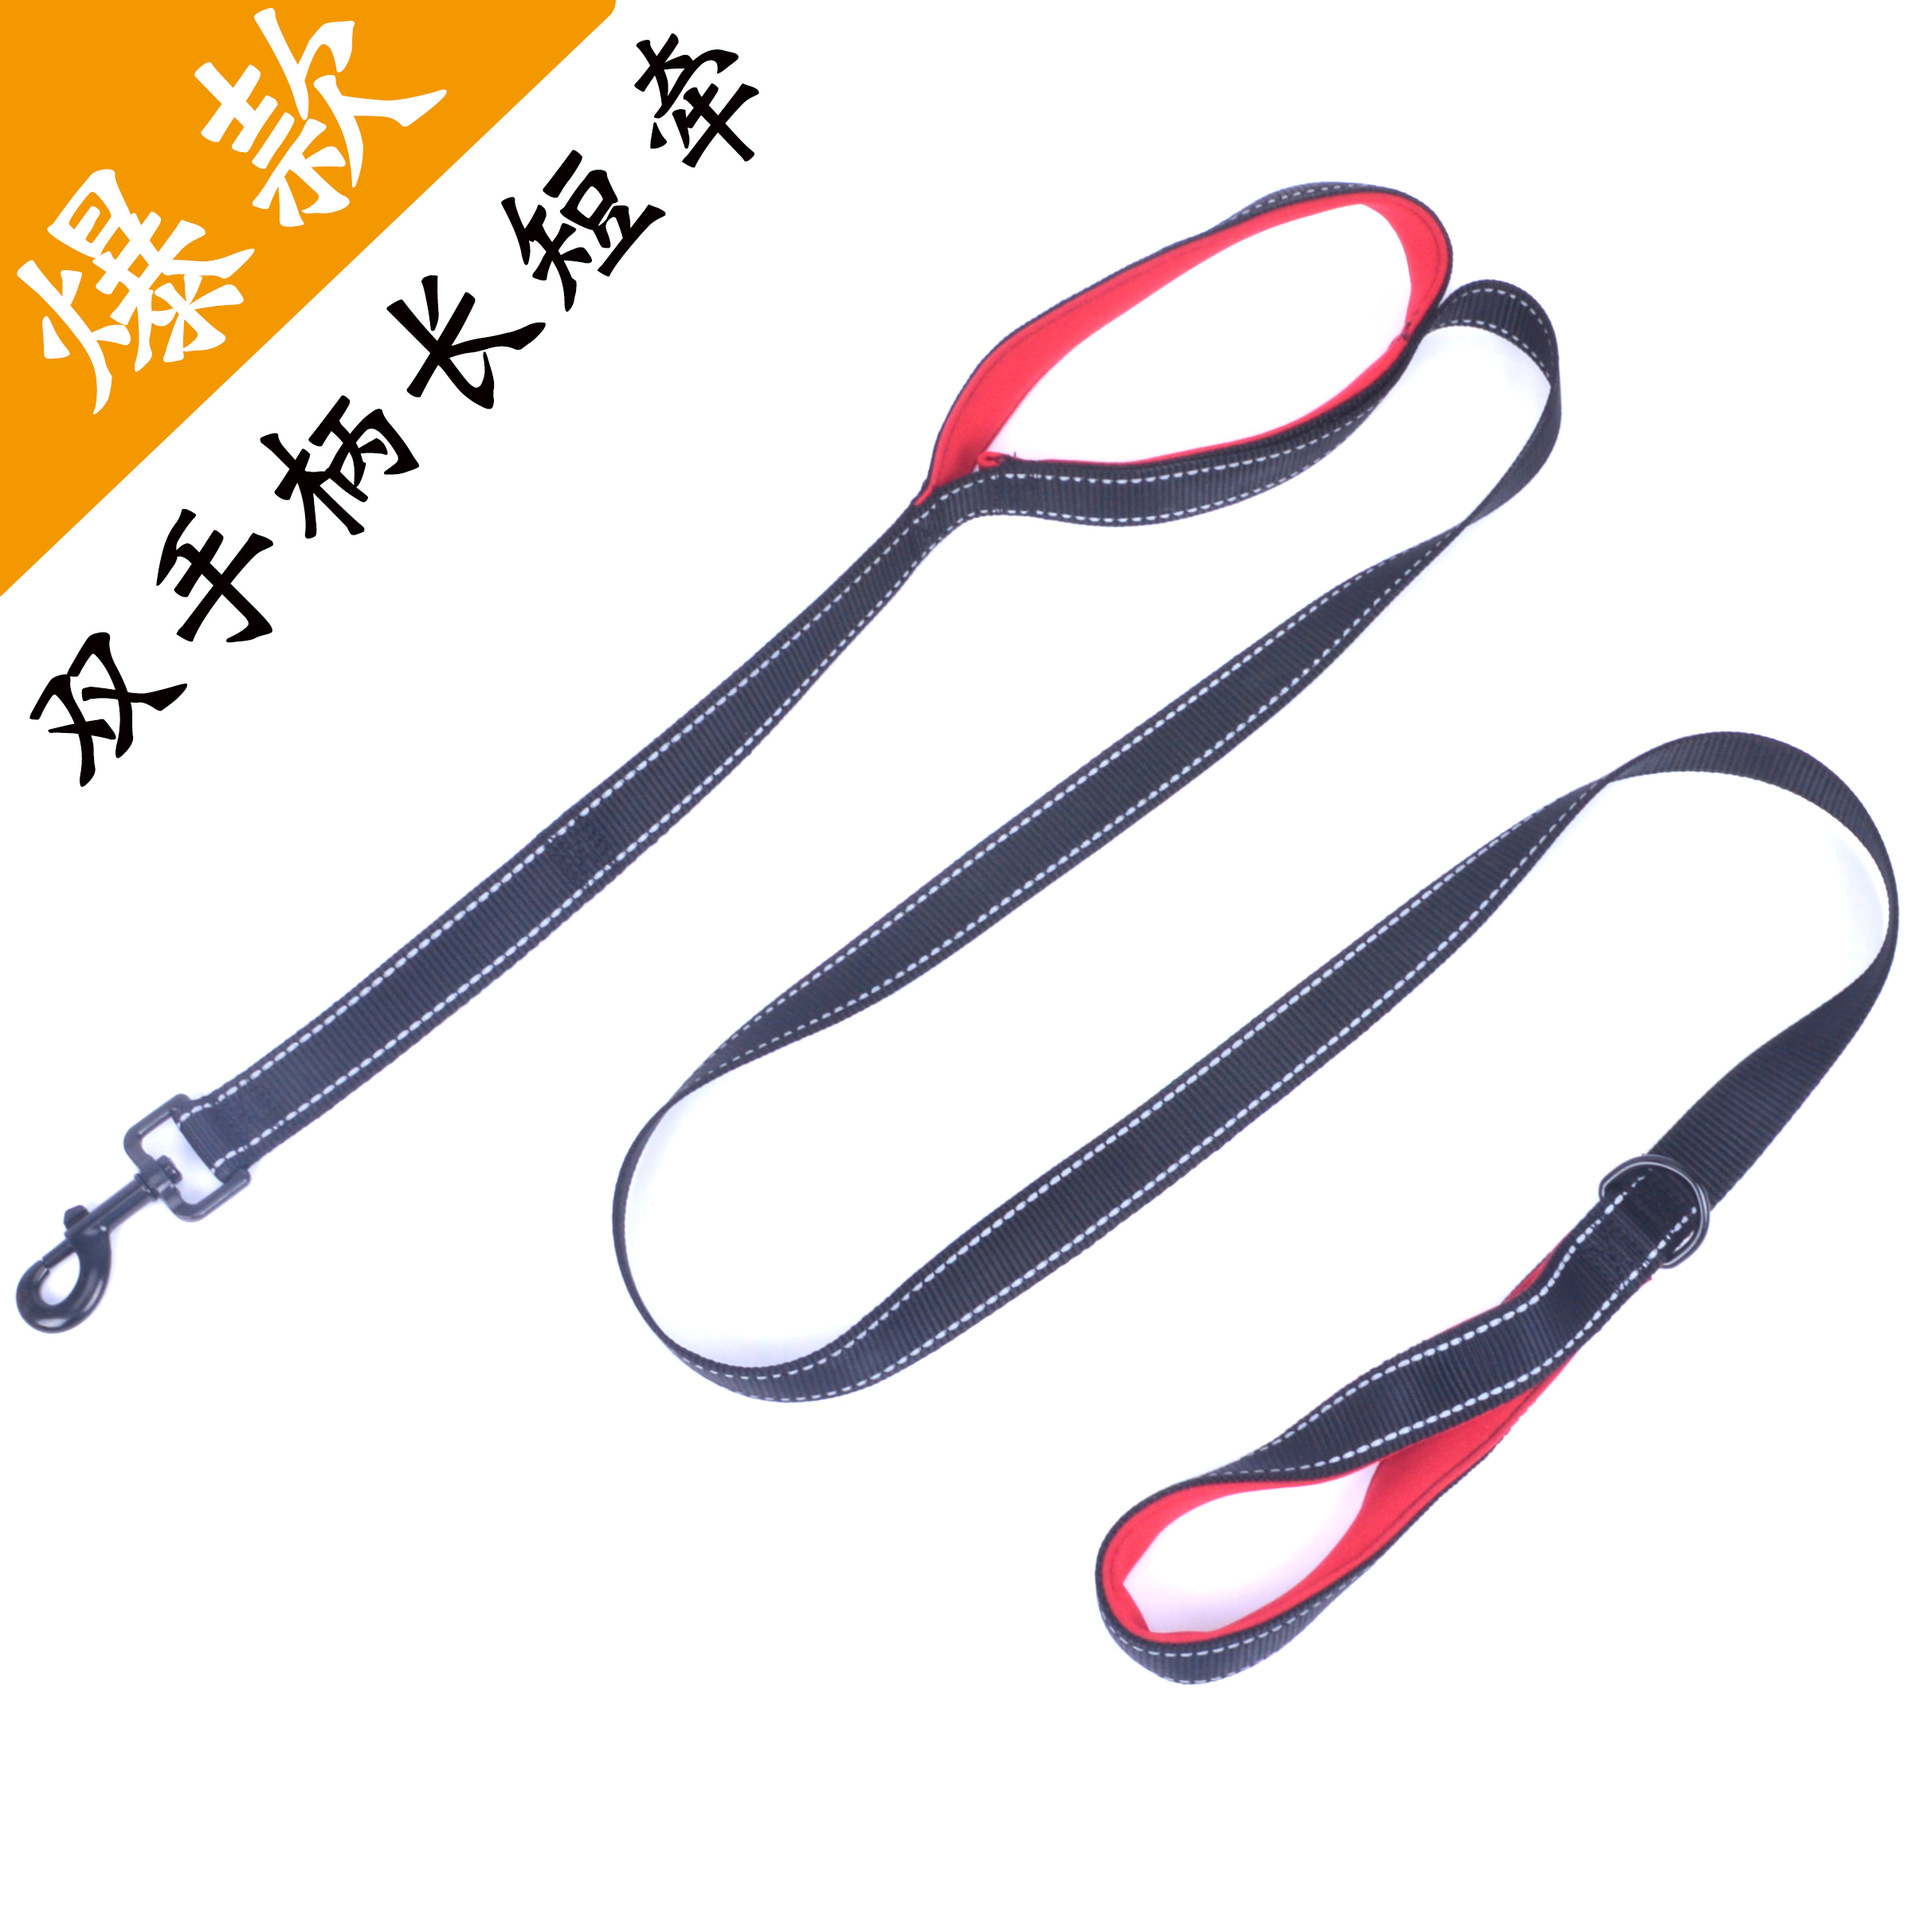 Pet Supplies Proof Punch Hand Holding Rope Dog Traction Belt Big Dog Short Traction